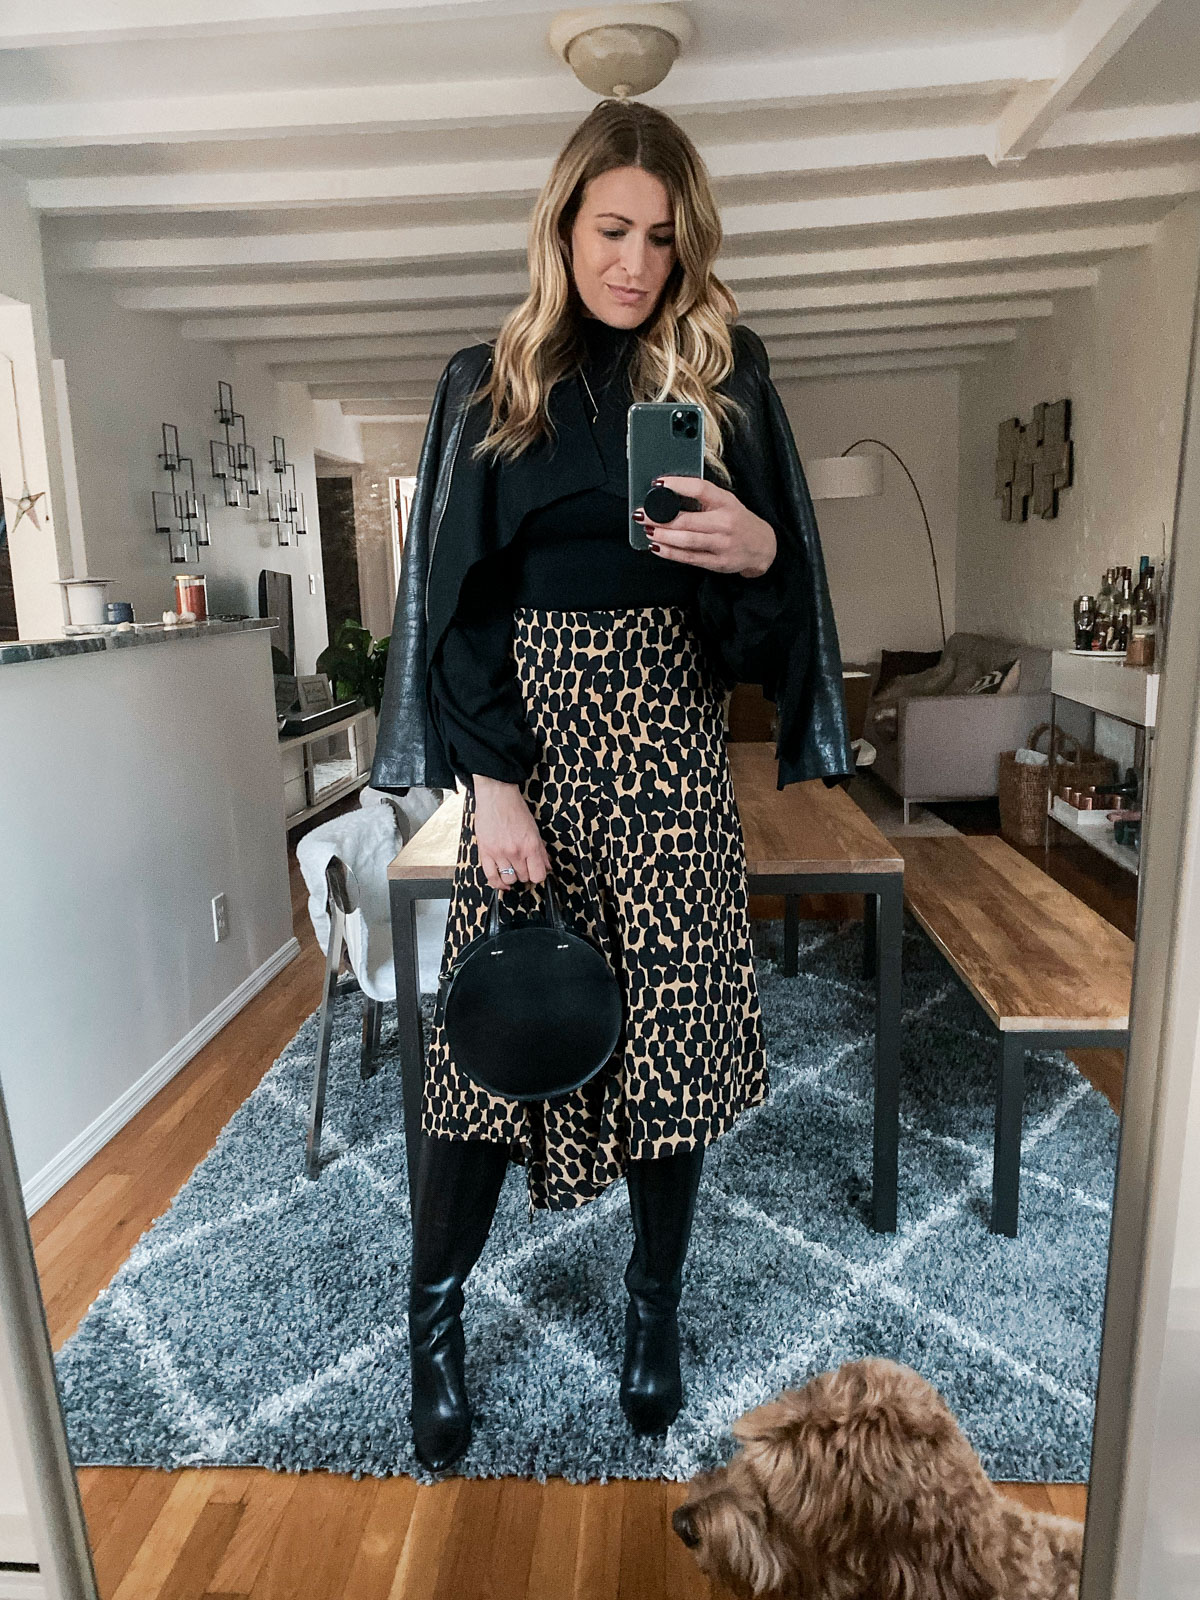 Laura Behnke The Life Actually Company What I Really Wore Mackage leather jacket, leopard skirt